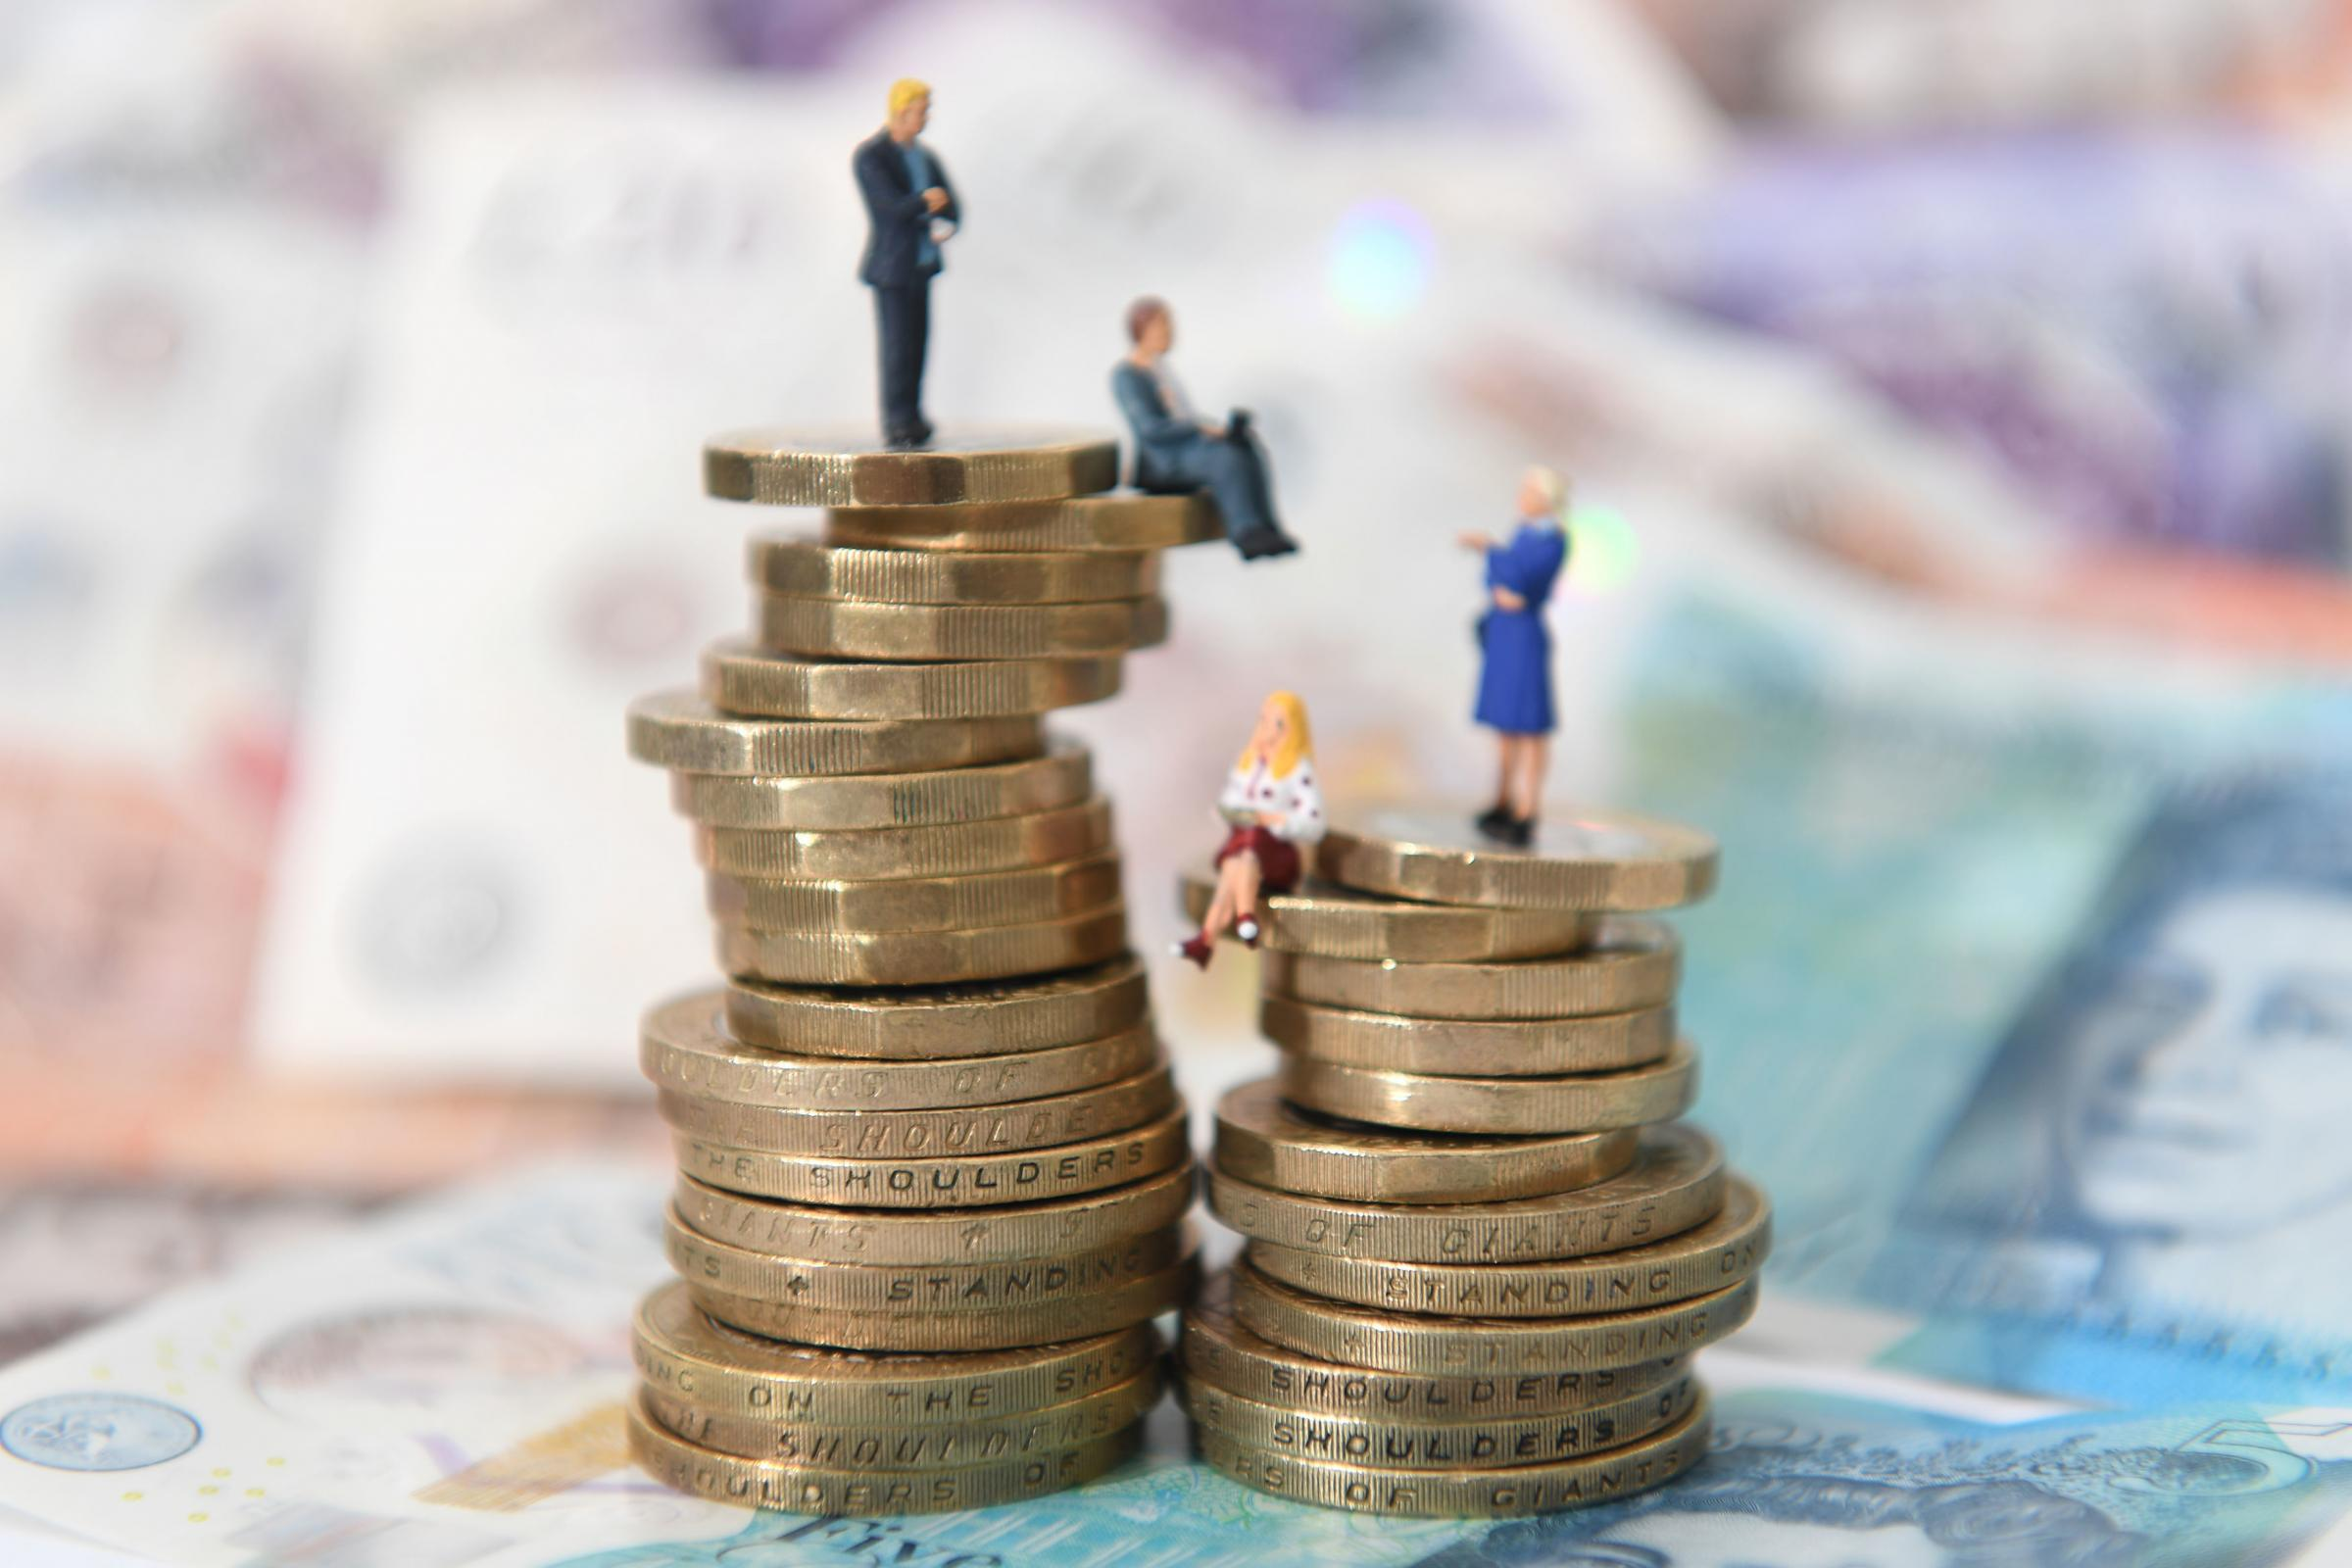 Swindon-based firms reveal the looming gender pay gap remains